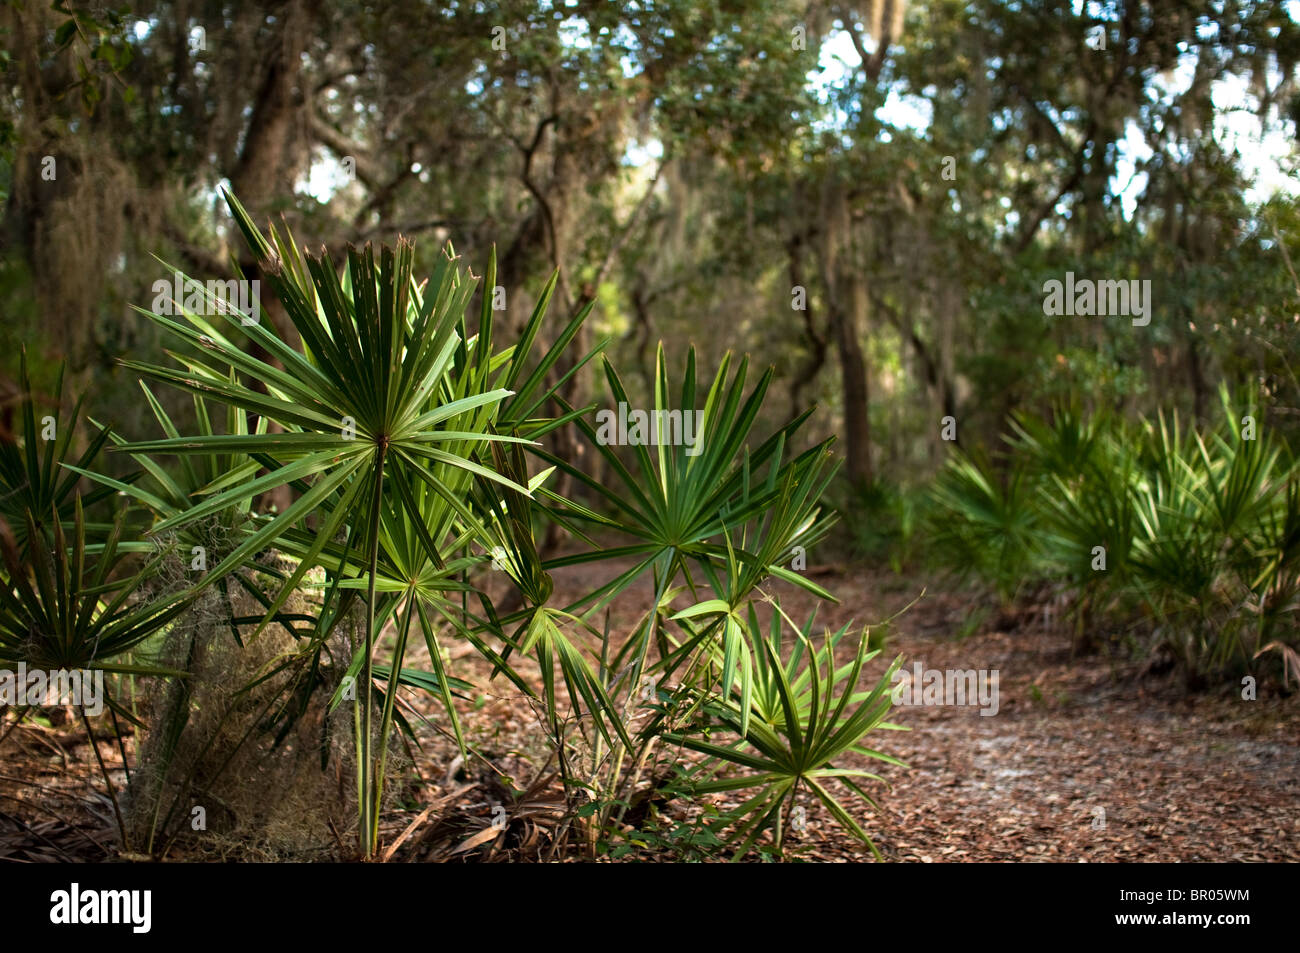 Palmettos line a path at Camp Helen, a Florida State Park on the Florida panhandle. Stock Photo